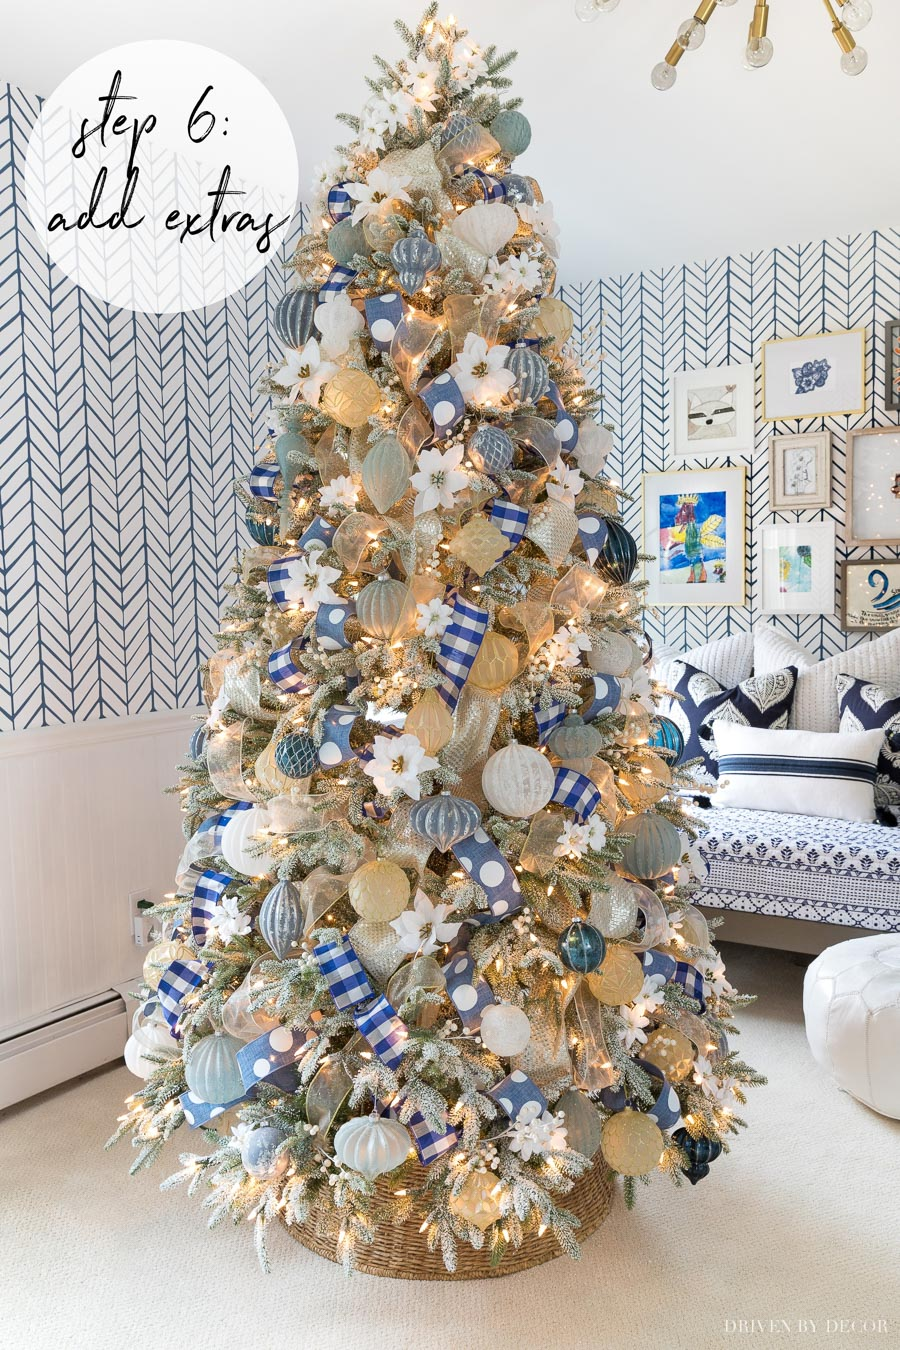 Love how she added the flowers and berries to her Christmas tree! Great how-to post!